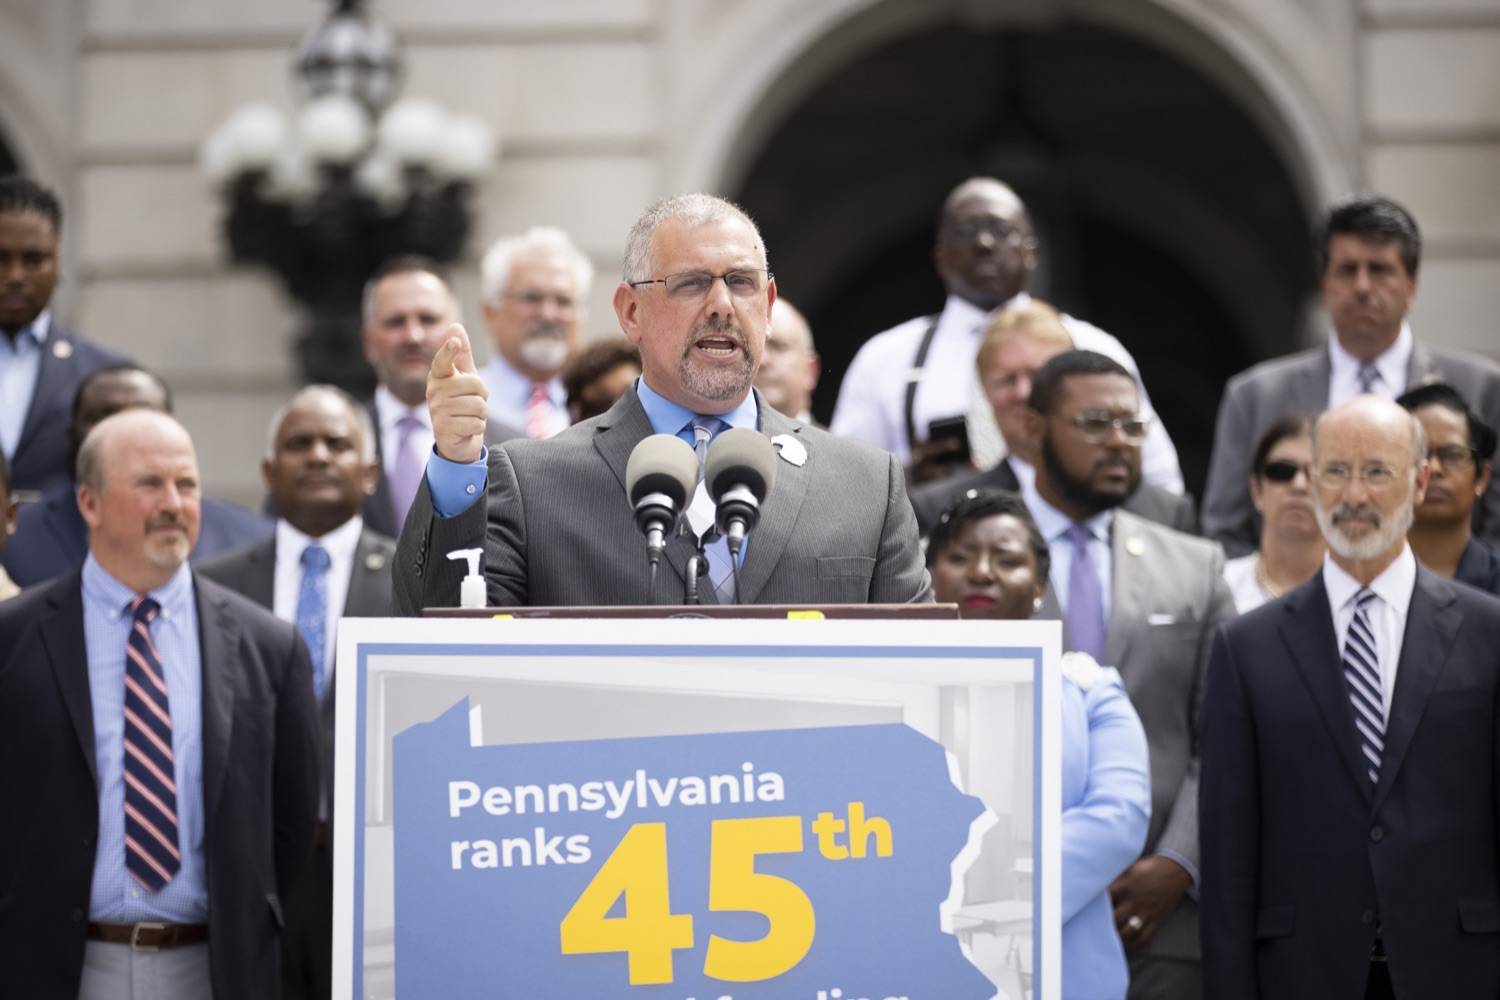 """<a href=""""https://filesource.wostreaming.net/commonwealthofpa/photo/18810_gov_fairFunding_dz_022.jpg"""" target=""""_blank"""">⇣Download Photo<br></a>Norristown Area School District Superintendent Christopher Dormer speaking with the press.  Continuing their commitment to students and working families, Governor Tom Wolf and House and Senate Democratic Leaders held a Capitol press conference today to highlight the injustice in the states school funding system and call for fair funding of every district.  Harrisburg, PA   June 8, 2021"""